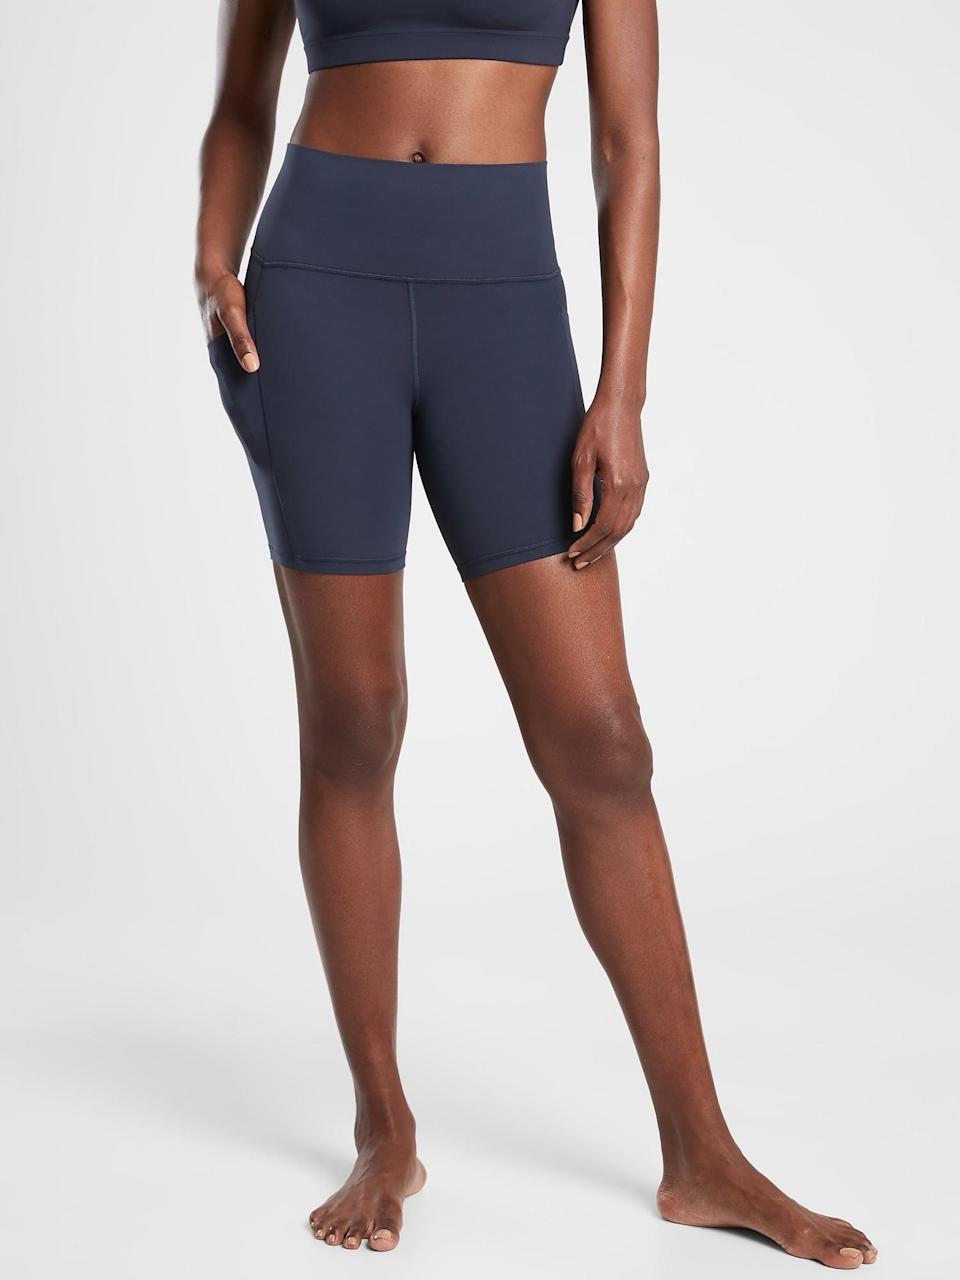 <p>This <span>Athleta Salutation Stash Pocket II Short</span> ($59) is so comfortable, long enough to feel covered, and has pockets. What more could you want?</p>